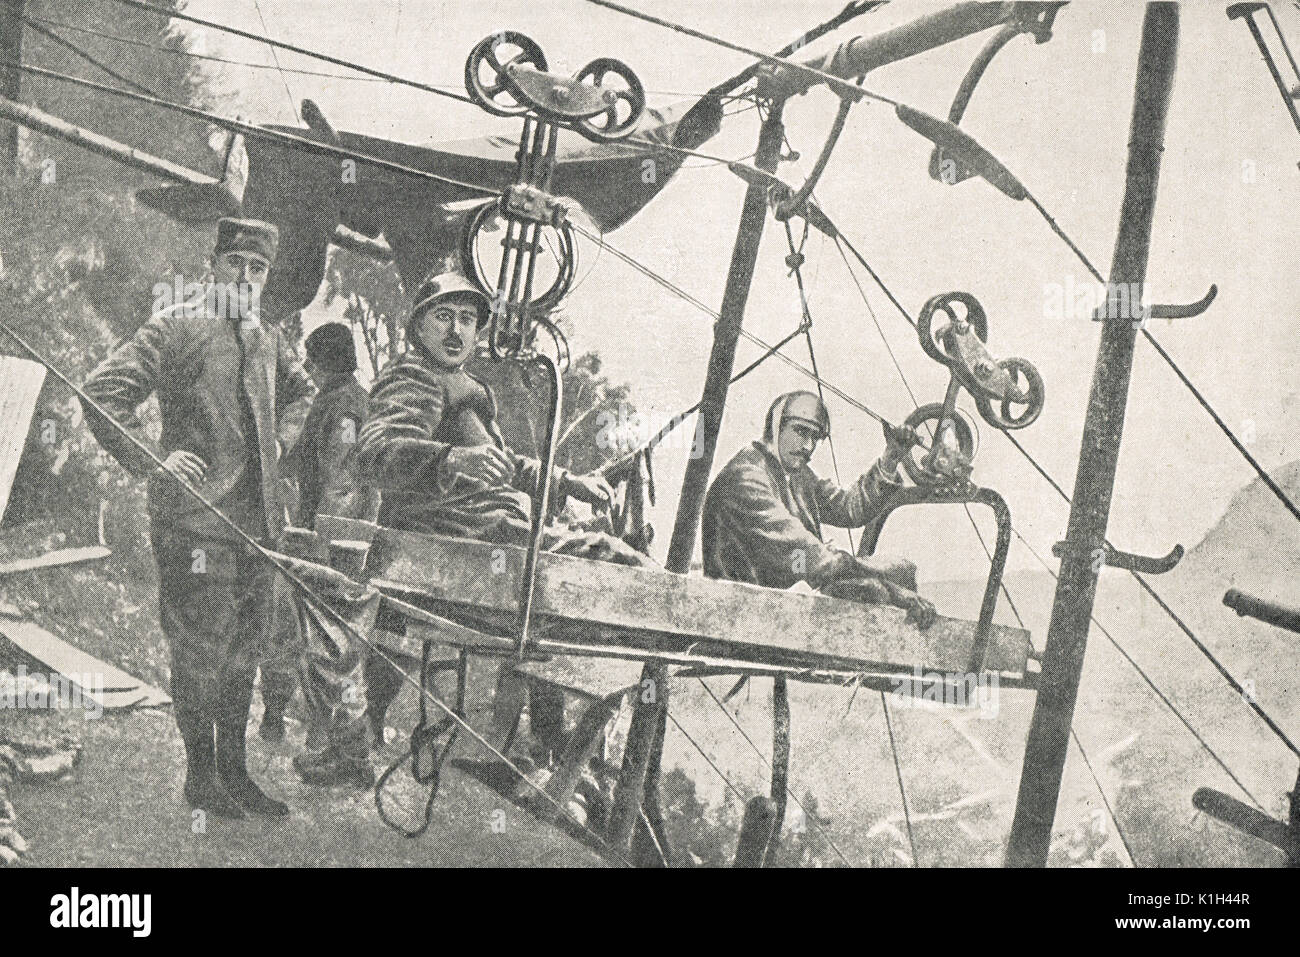 Italian soldiers wounded during fighting, Trentino, being moved by cable car, WW1 - Stock Image